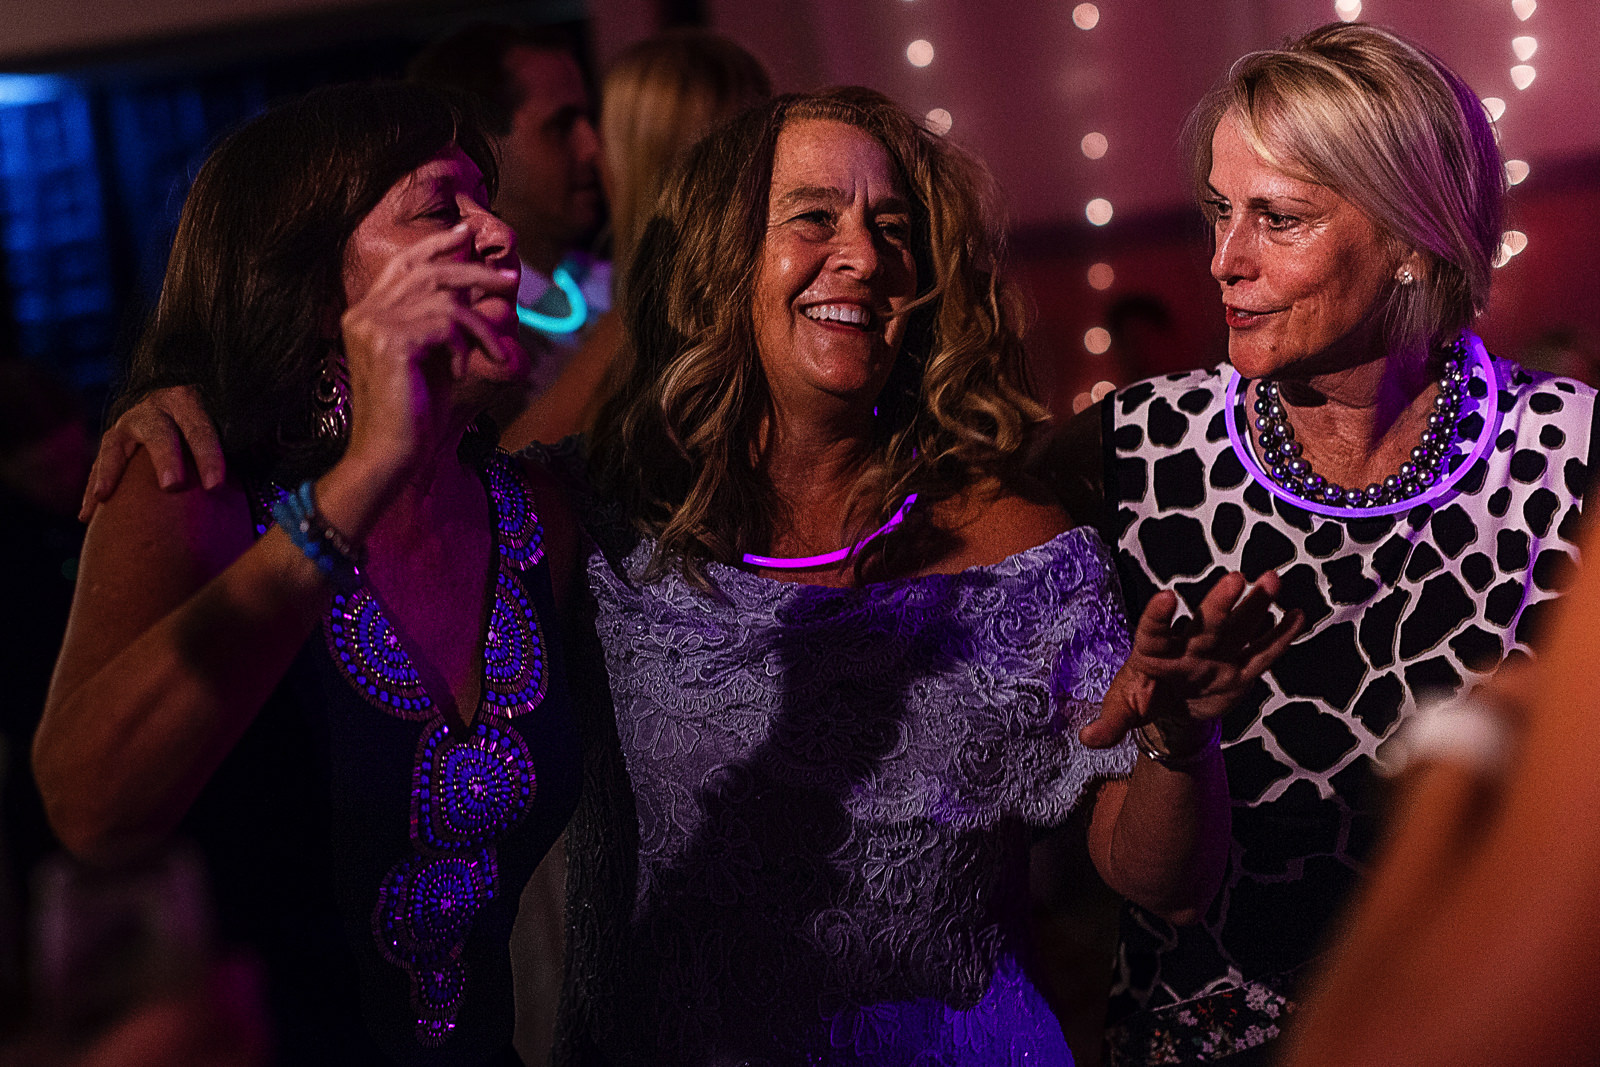 Mother of the bride and guests dancing at wedding reception - Eder Acevedo cancun los cabos vallarta wedding photographer